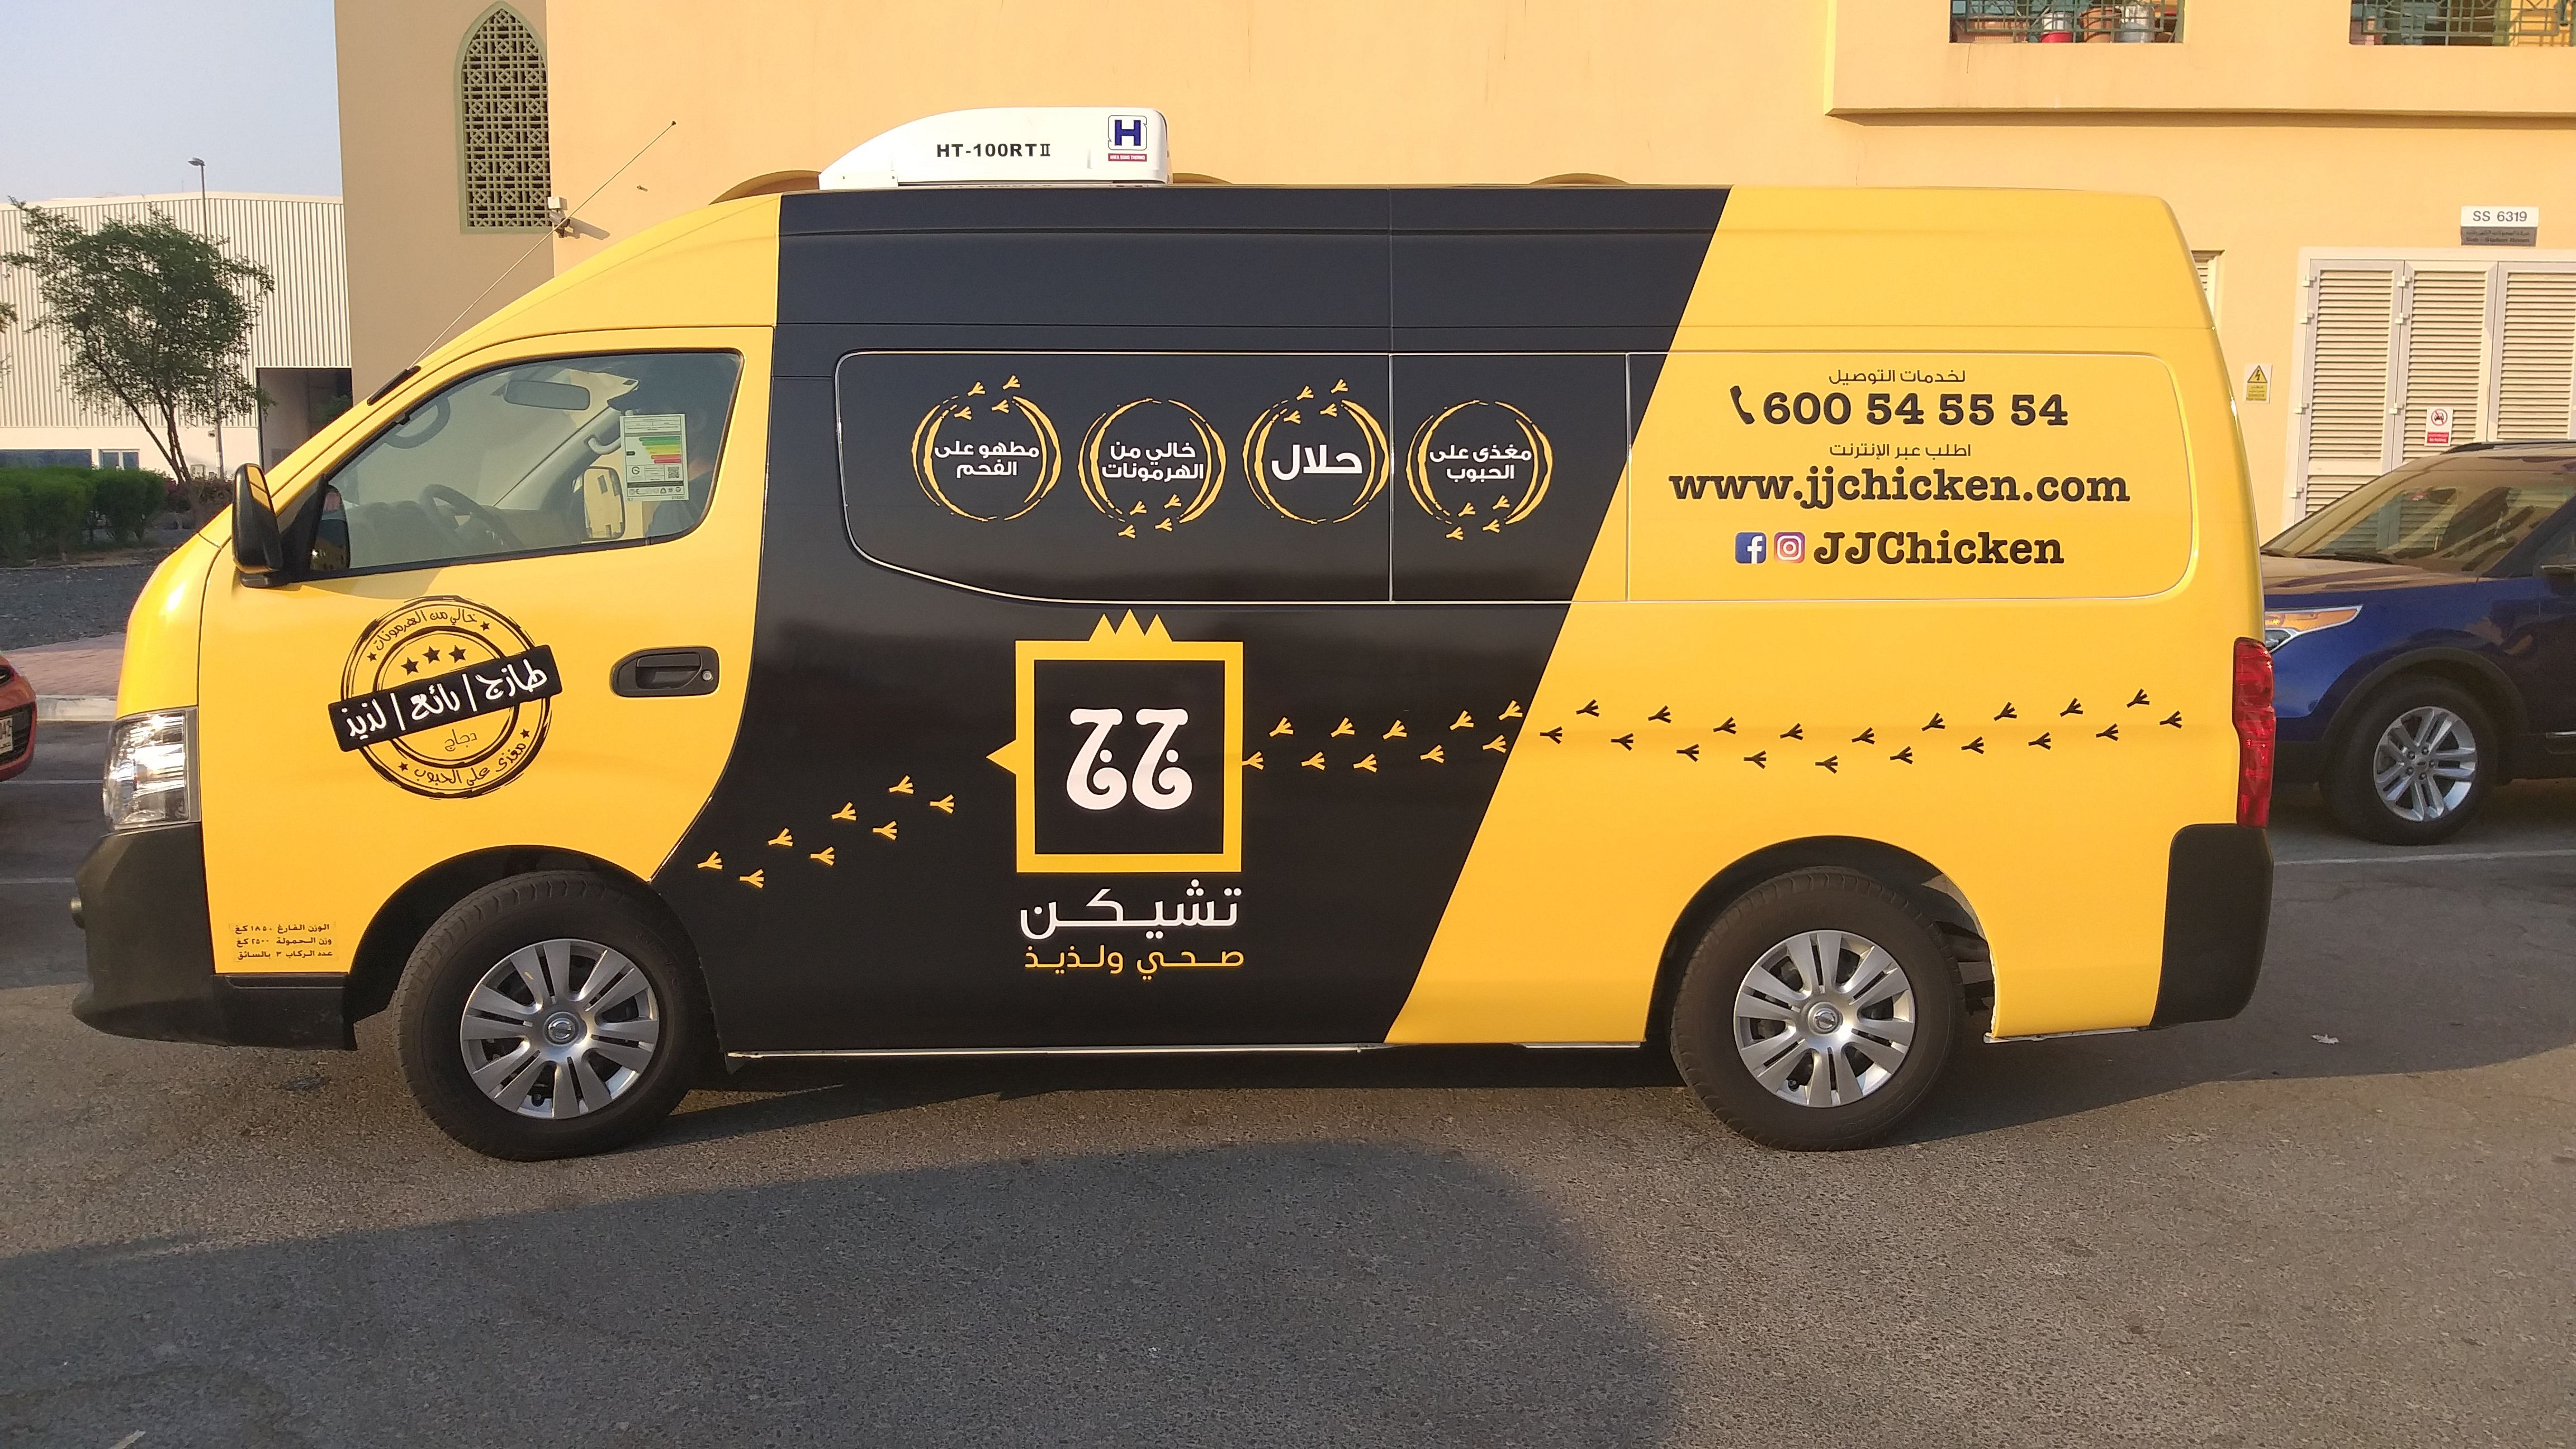 Vehicle Branding Car Stickers Bus Wrapping Vehicle Advertisement In Dubai Car Brands Car Stickers Bus [ 2592 x 4608 Pixel ]